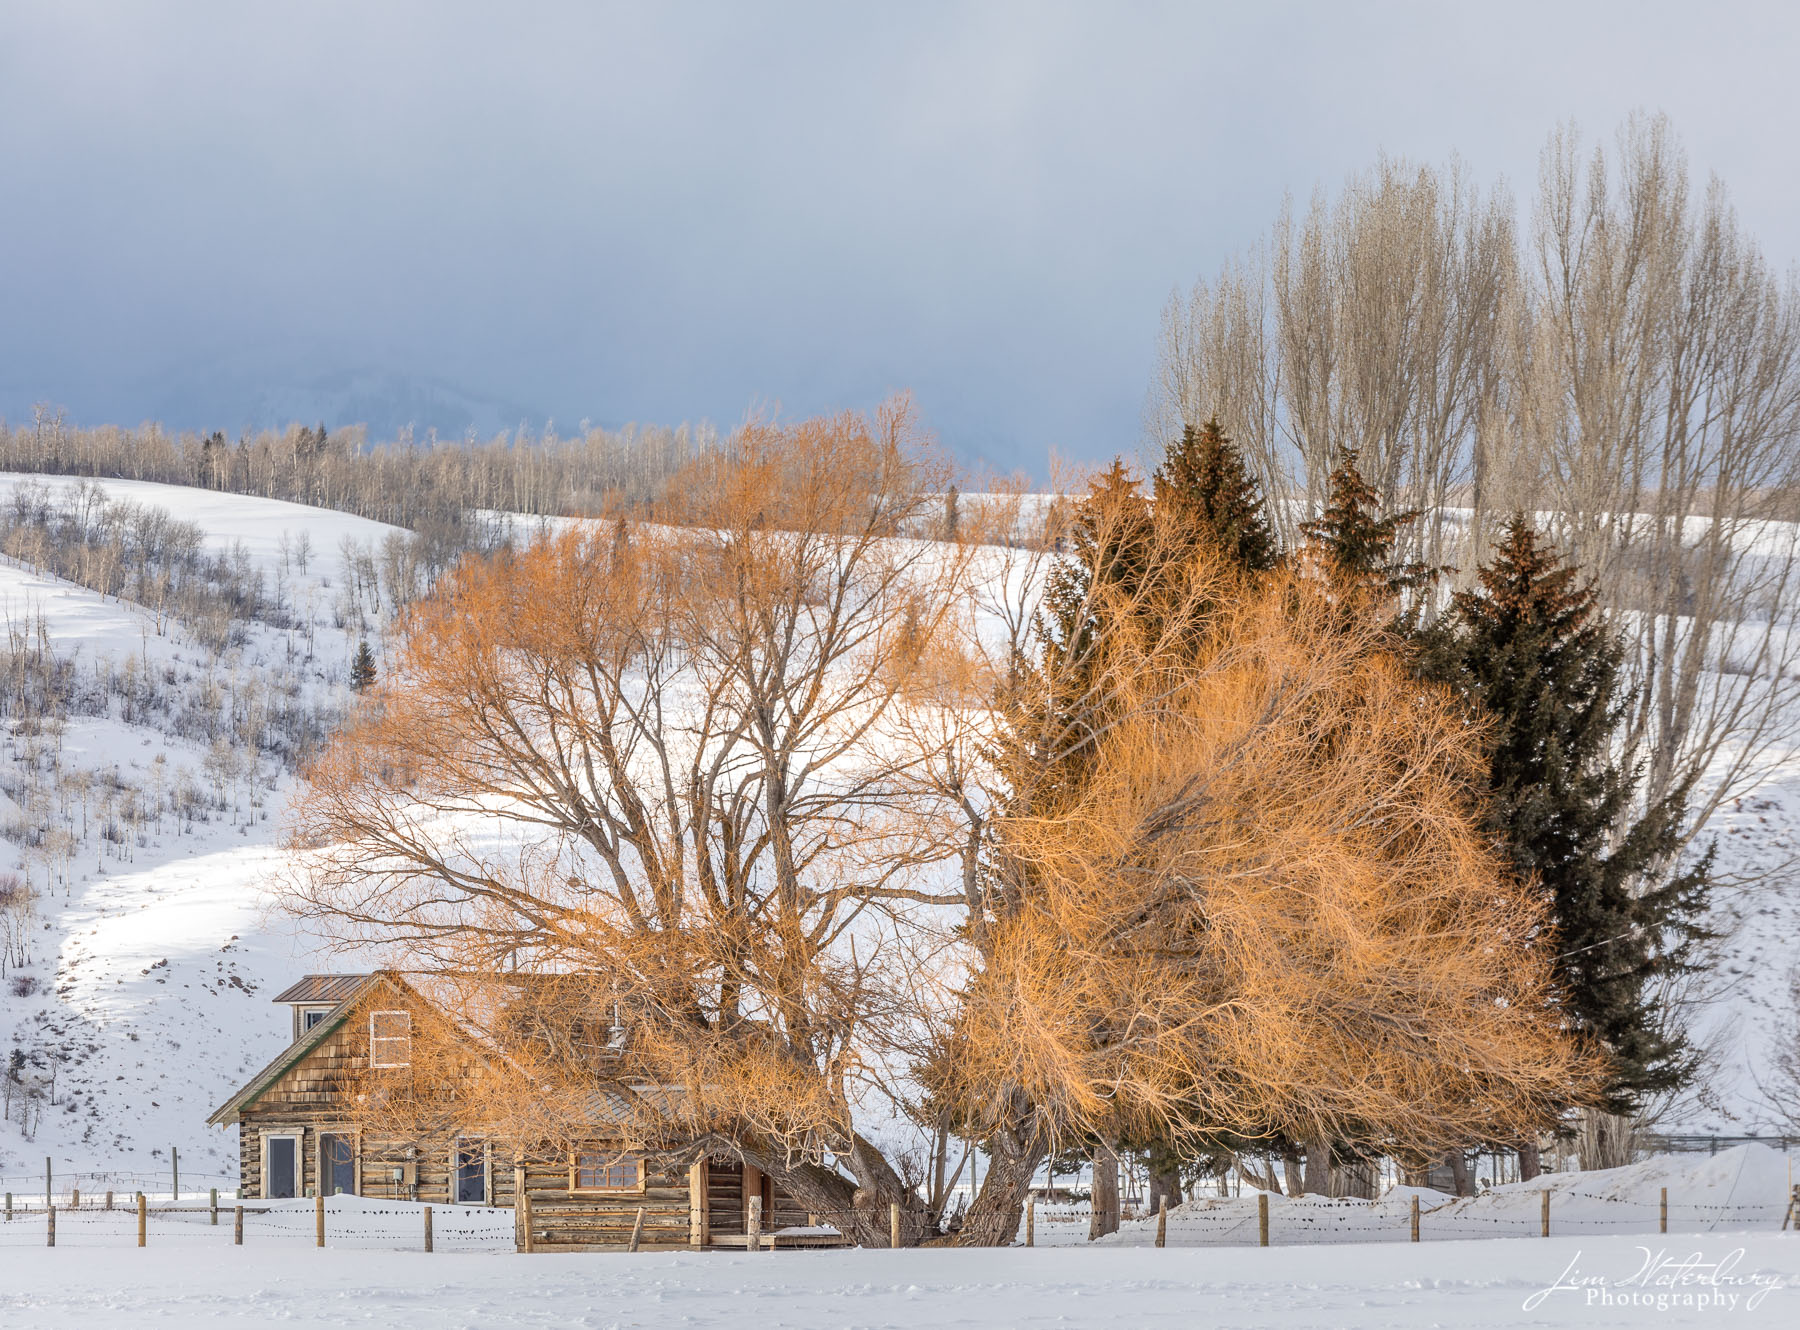 Willow trees in winter, Spring Gulch Road, Jackson, WY